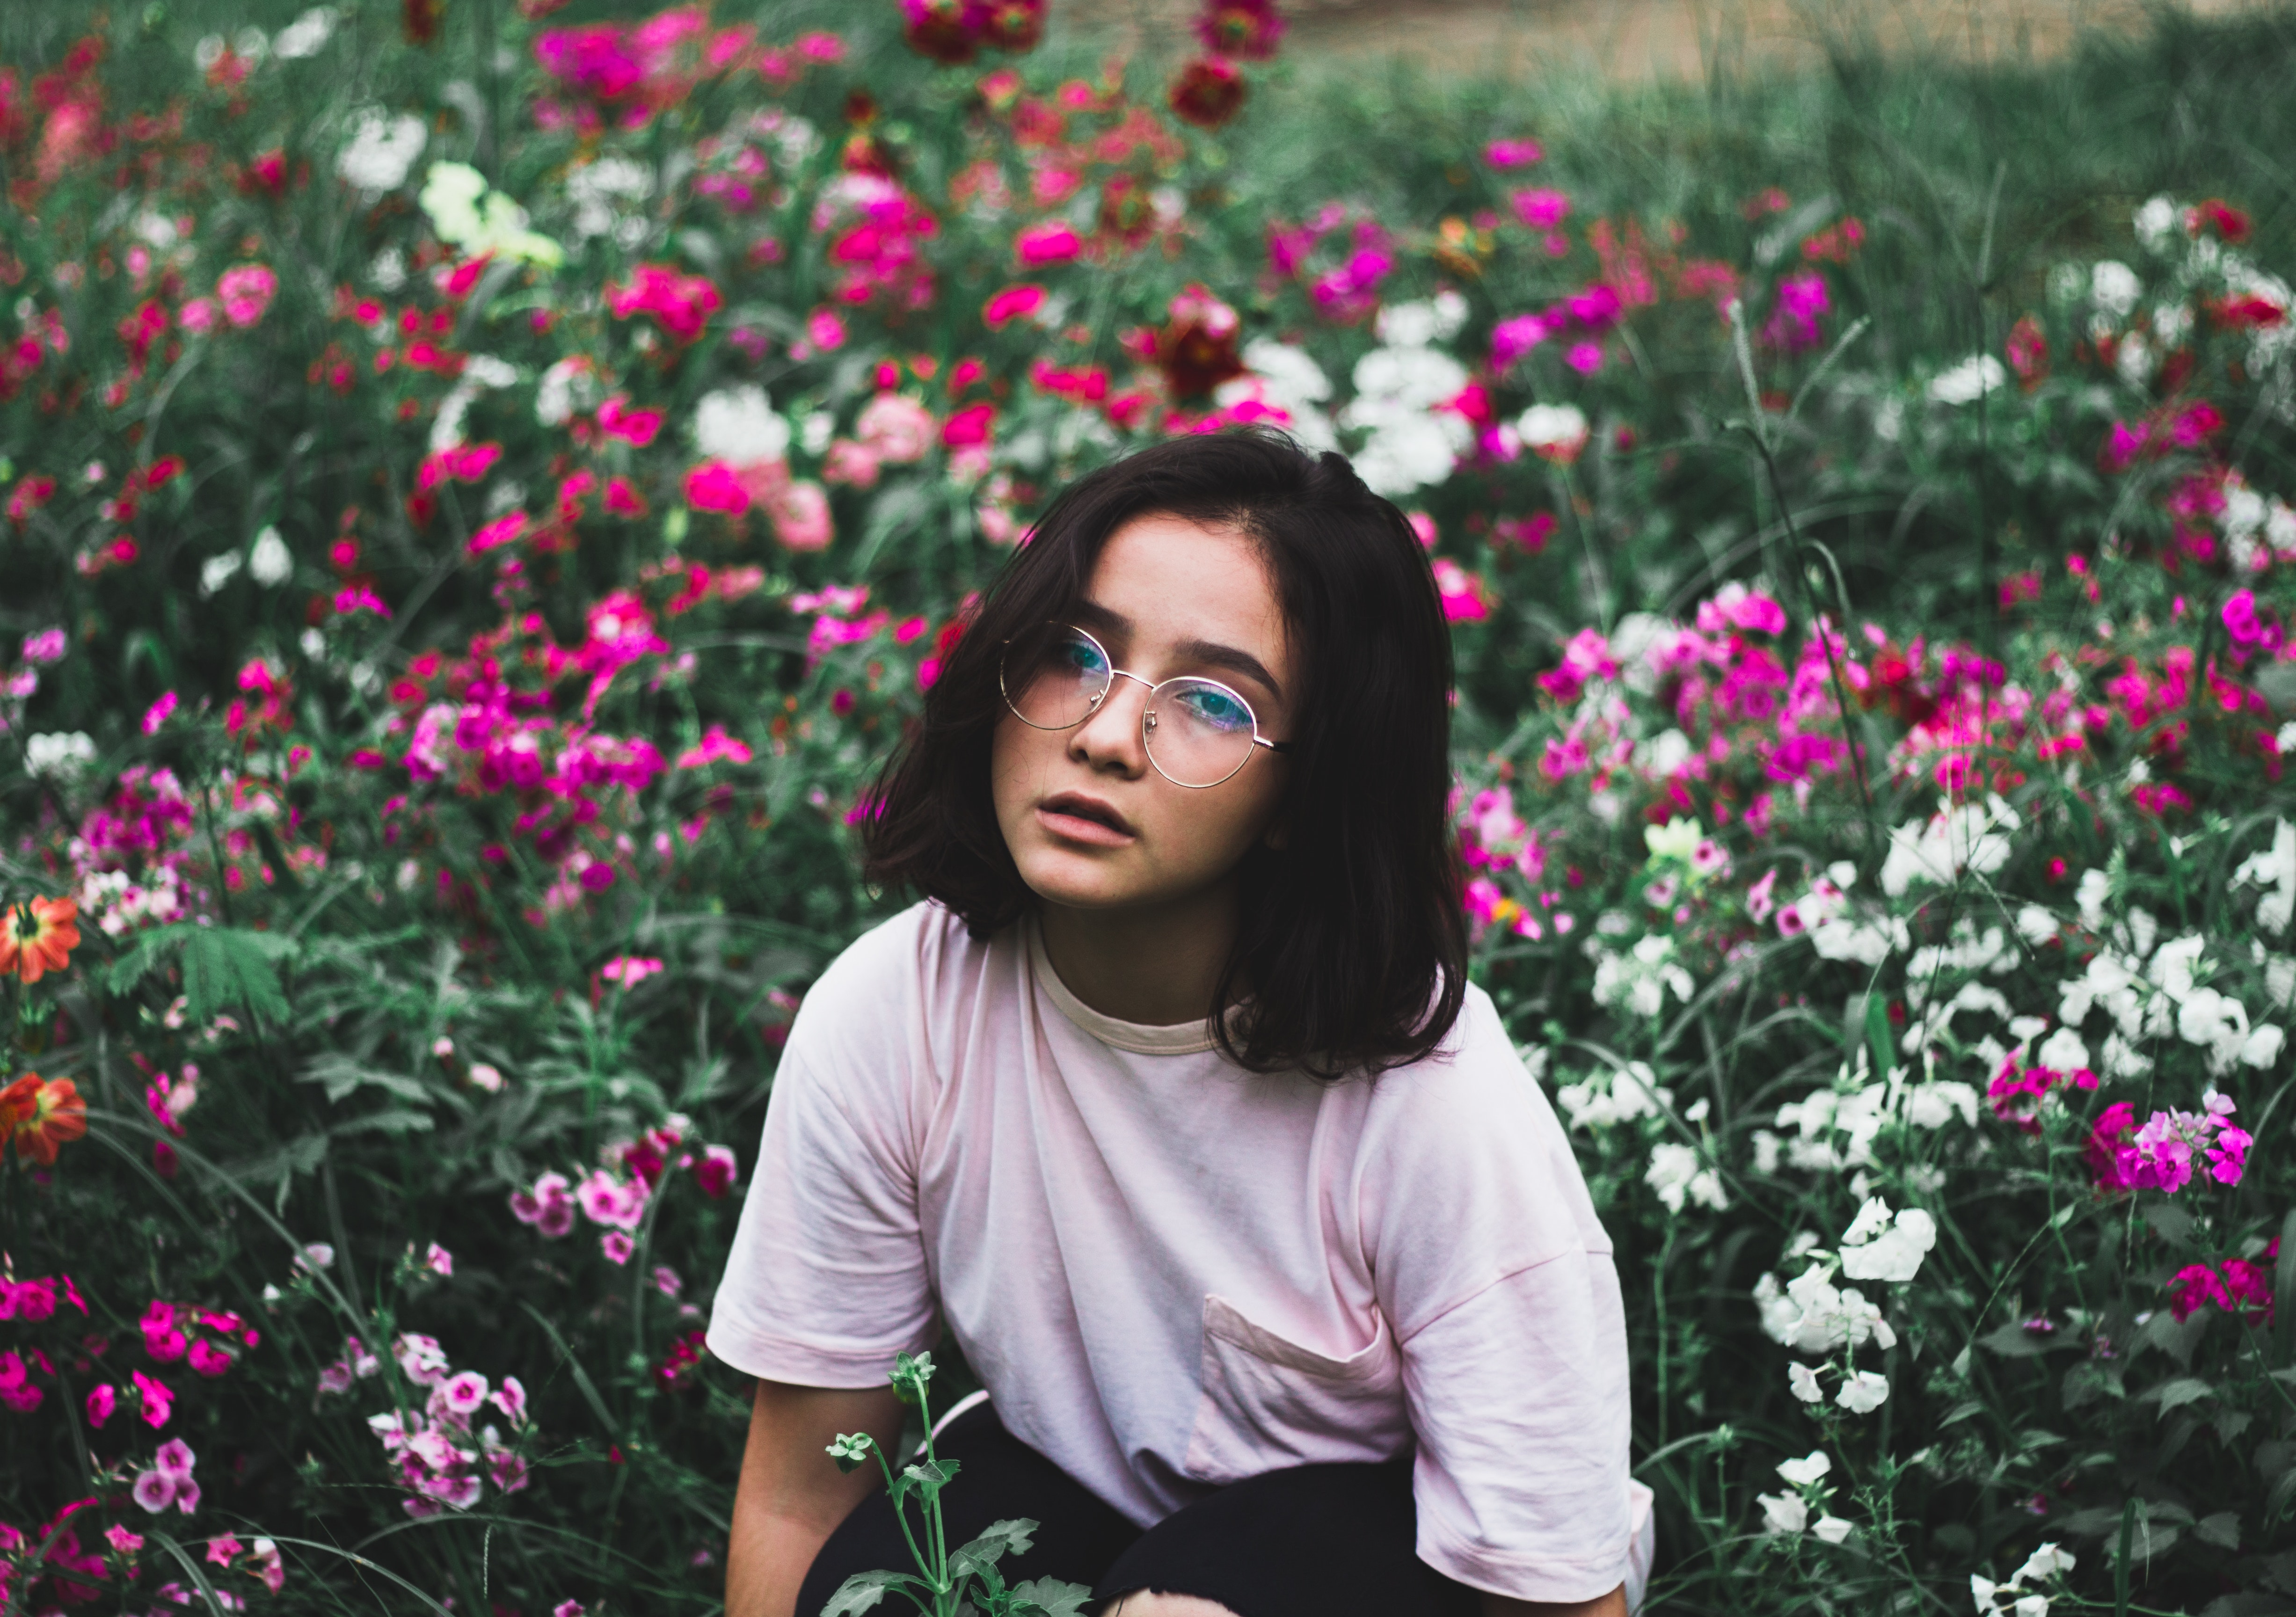 Girl in white t-shirt surrounded by flowers photo